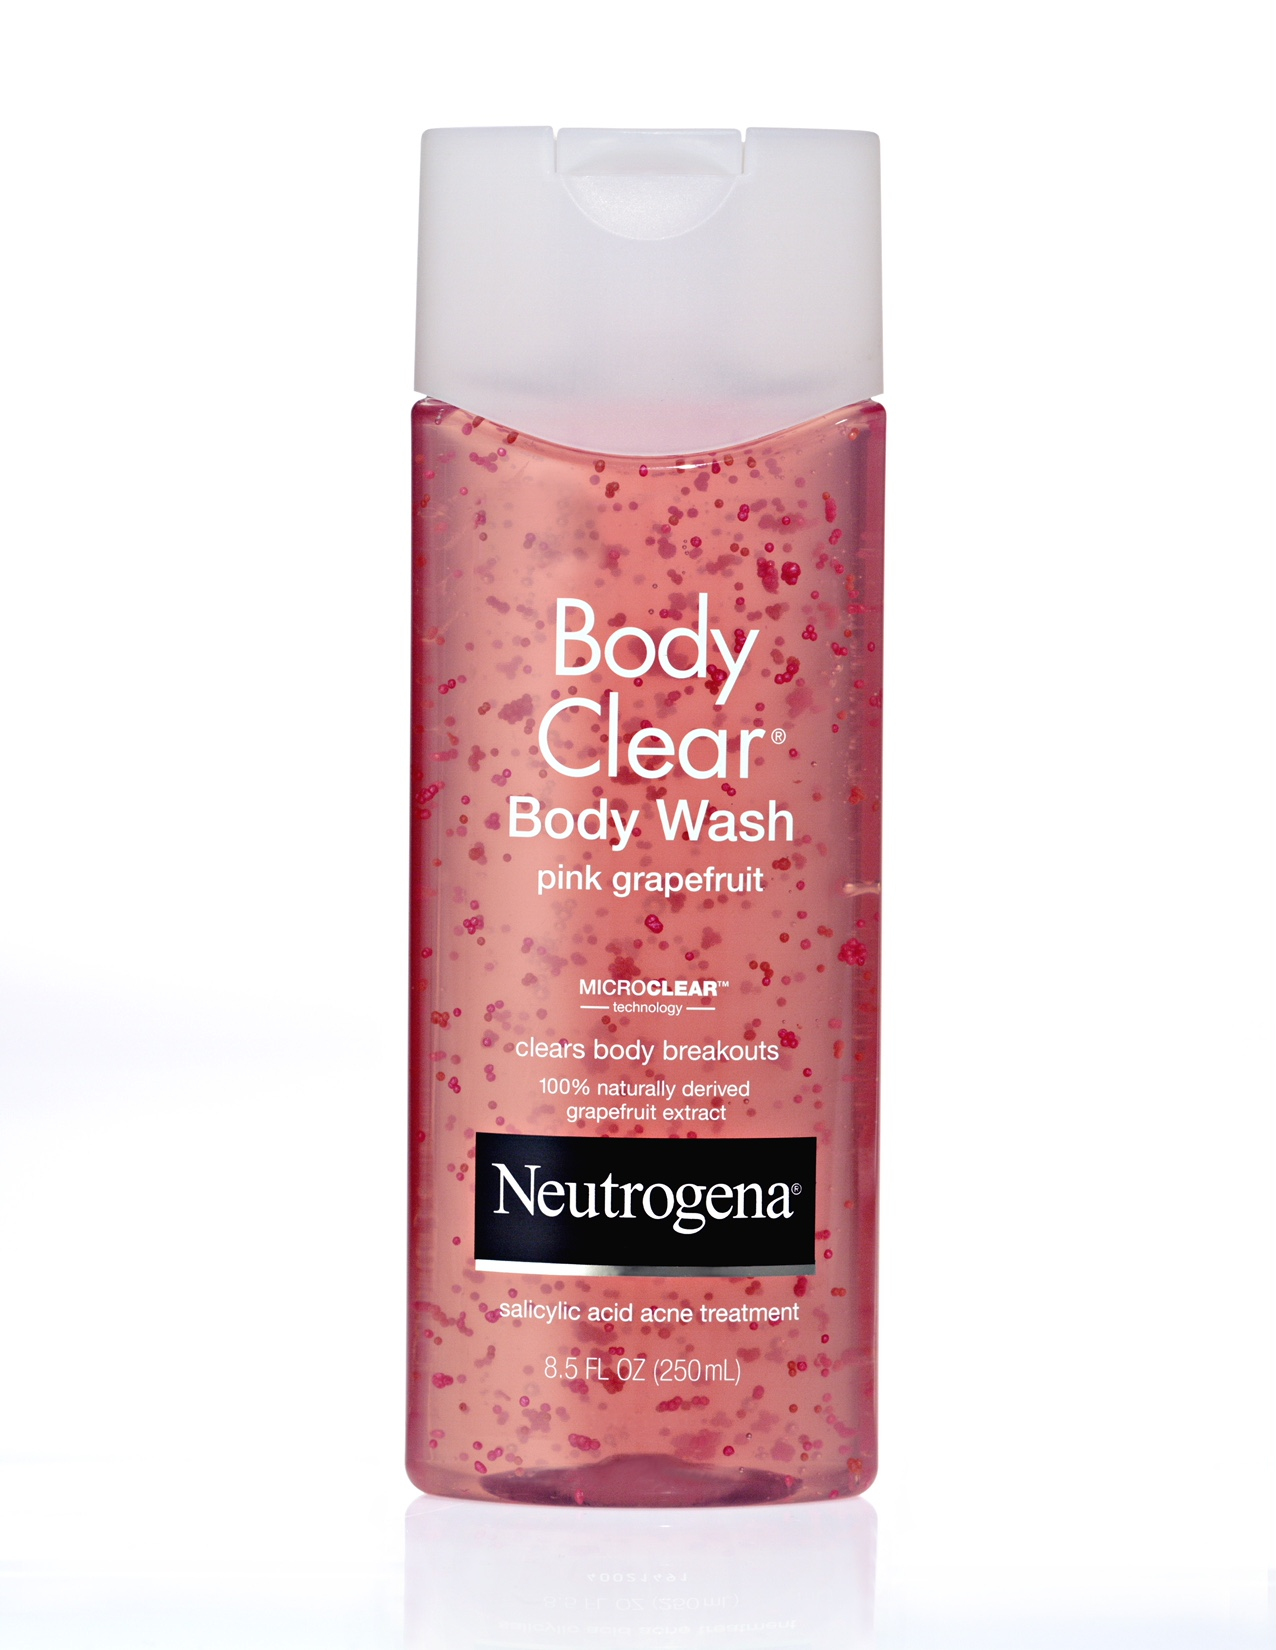 NEUTROGENA Body Clear Body Wash Pink Grapefruit.JPG